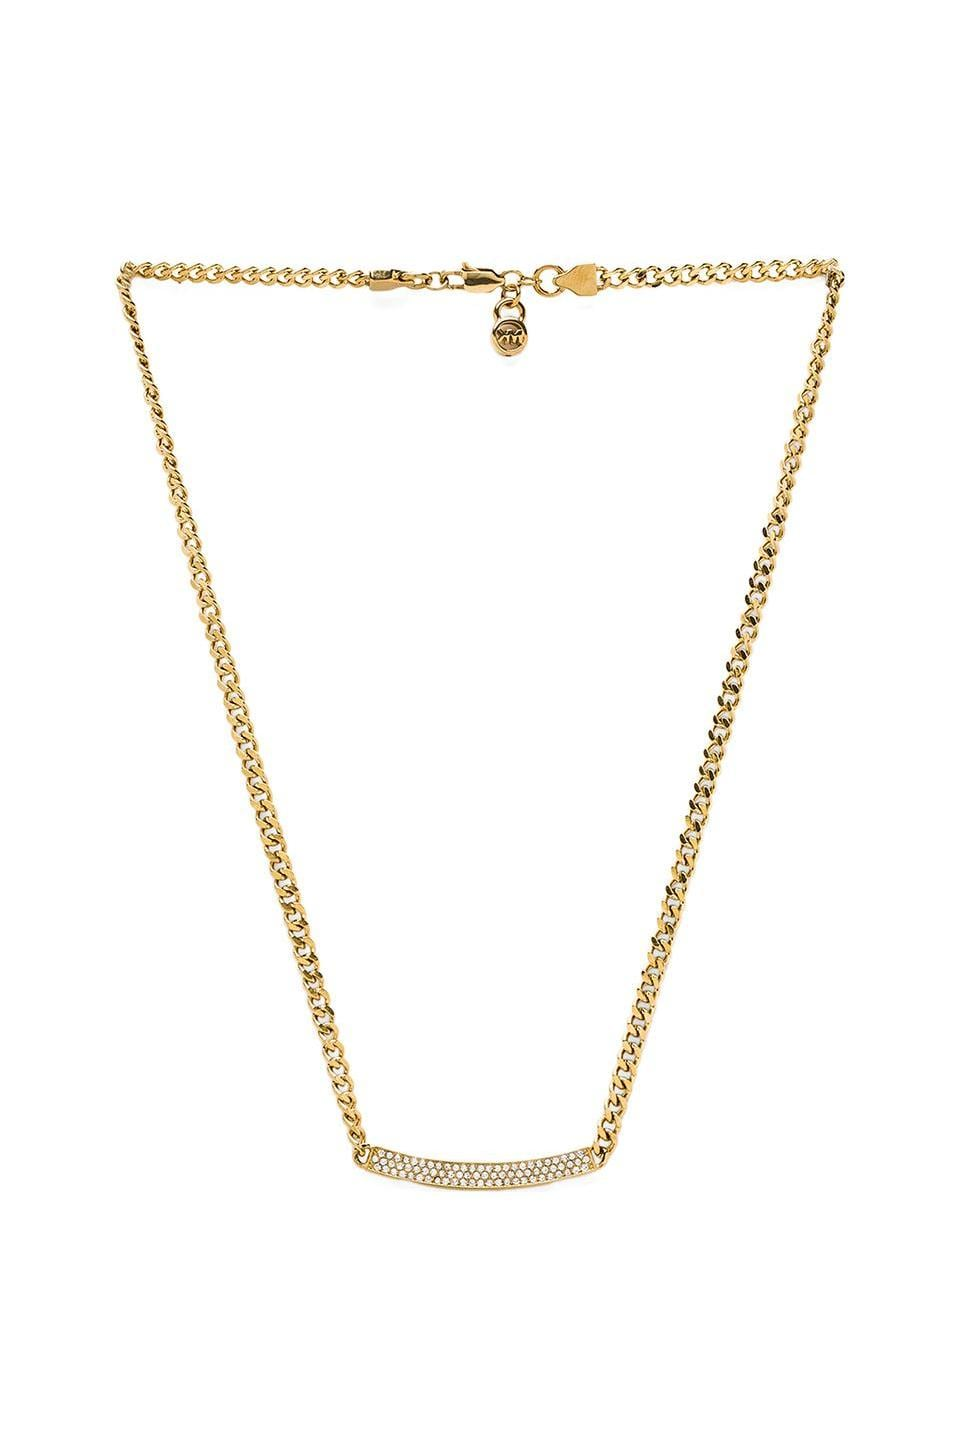 Michael Kors Jeweled Astor Necklace in Gold